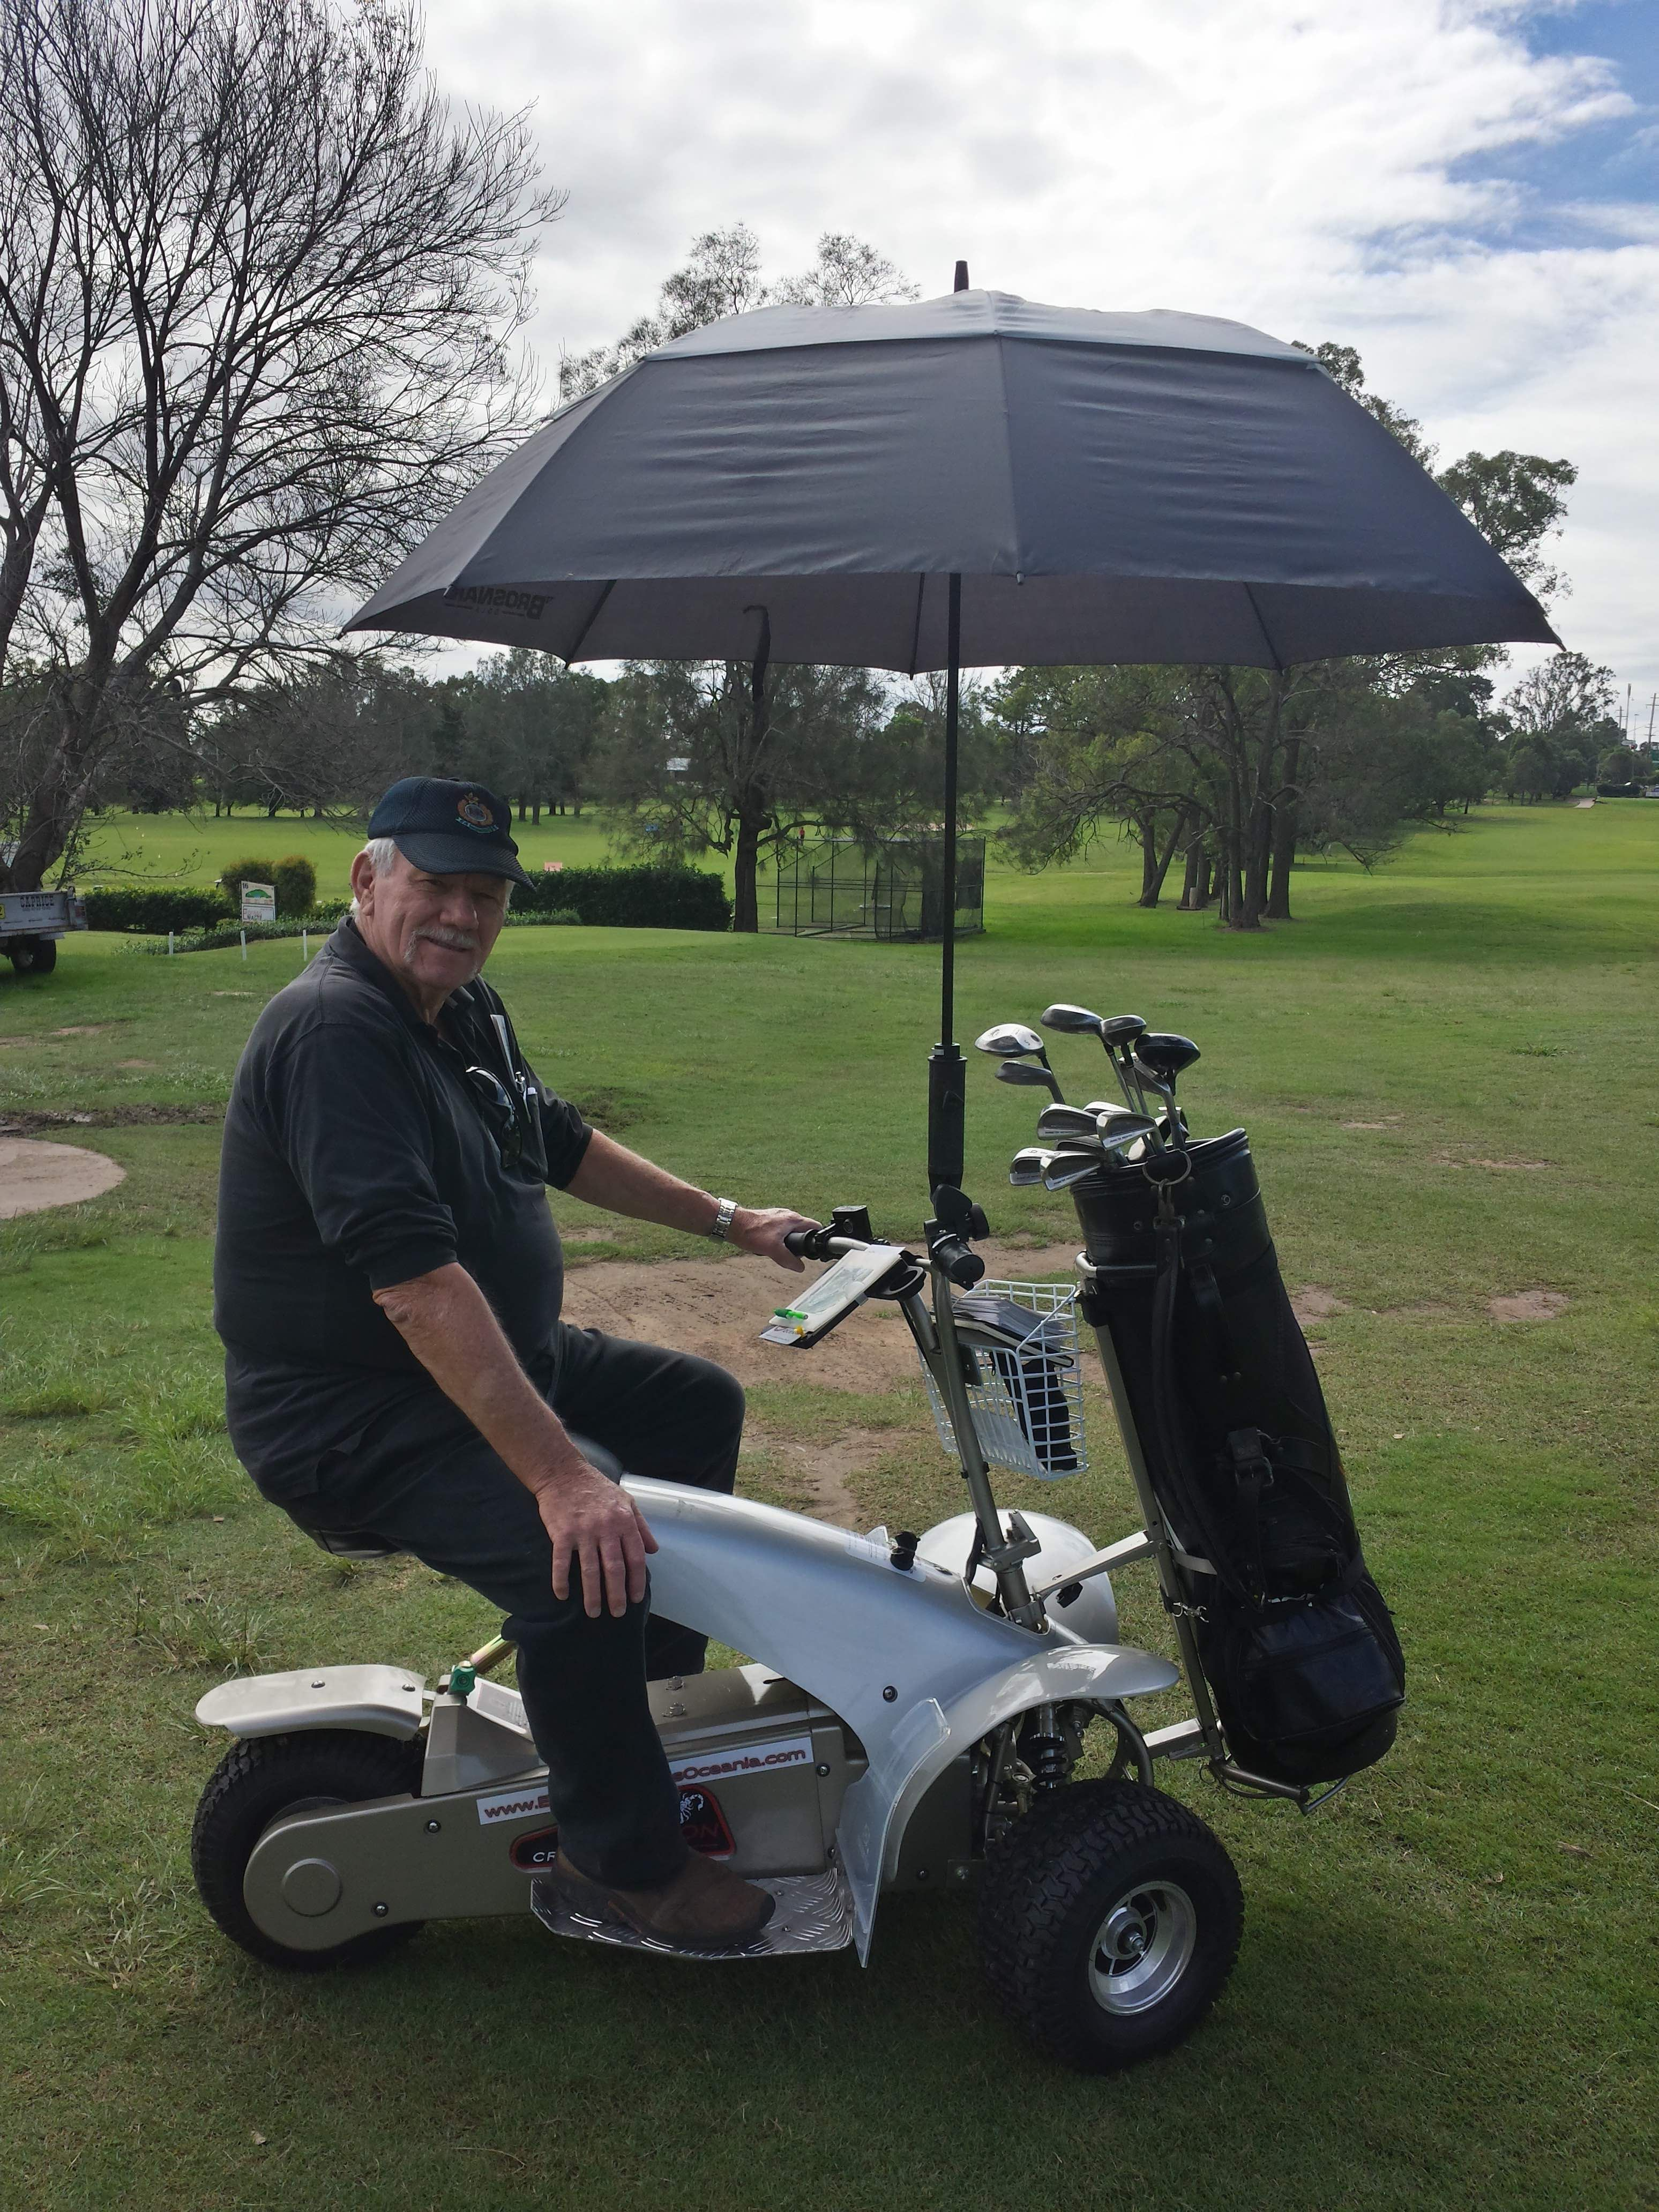 The Umbrella Holder On The Golf Cruiser Will Handle Any Umbrella Keeping You Out Of The Sun If You D Like A Trial Of Our Golf Carts Baby Bike Golf Push